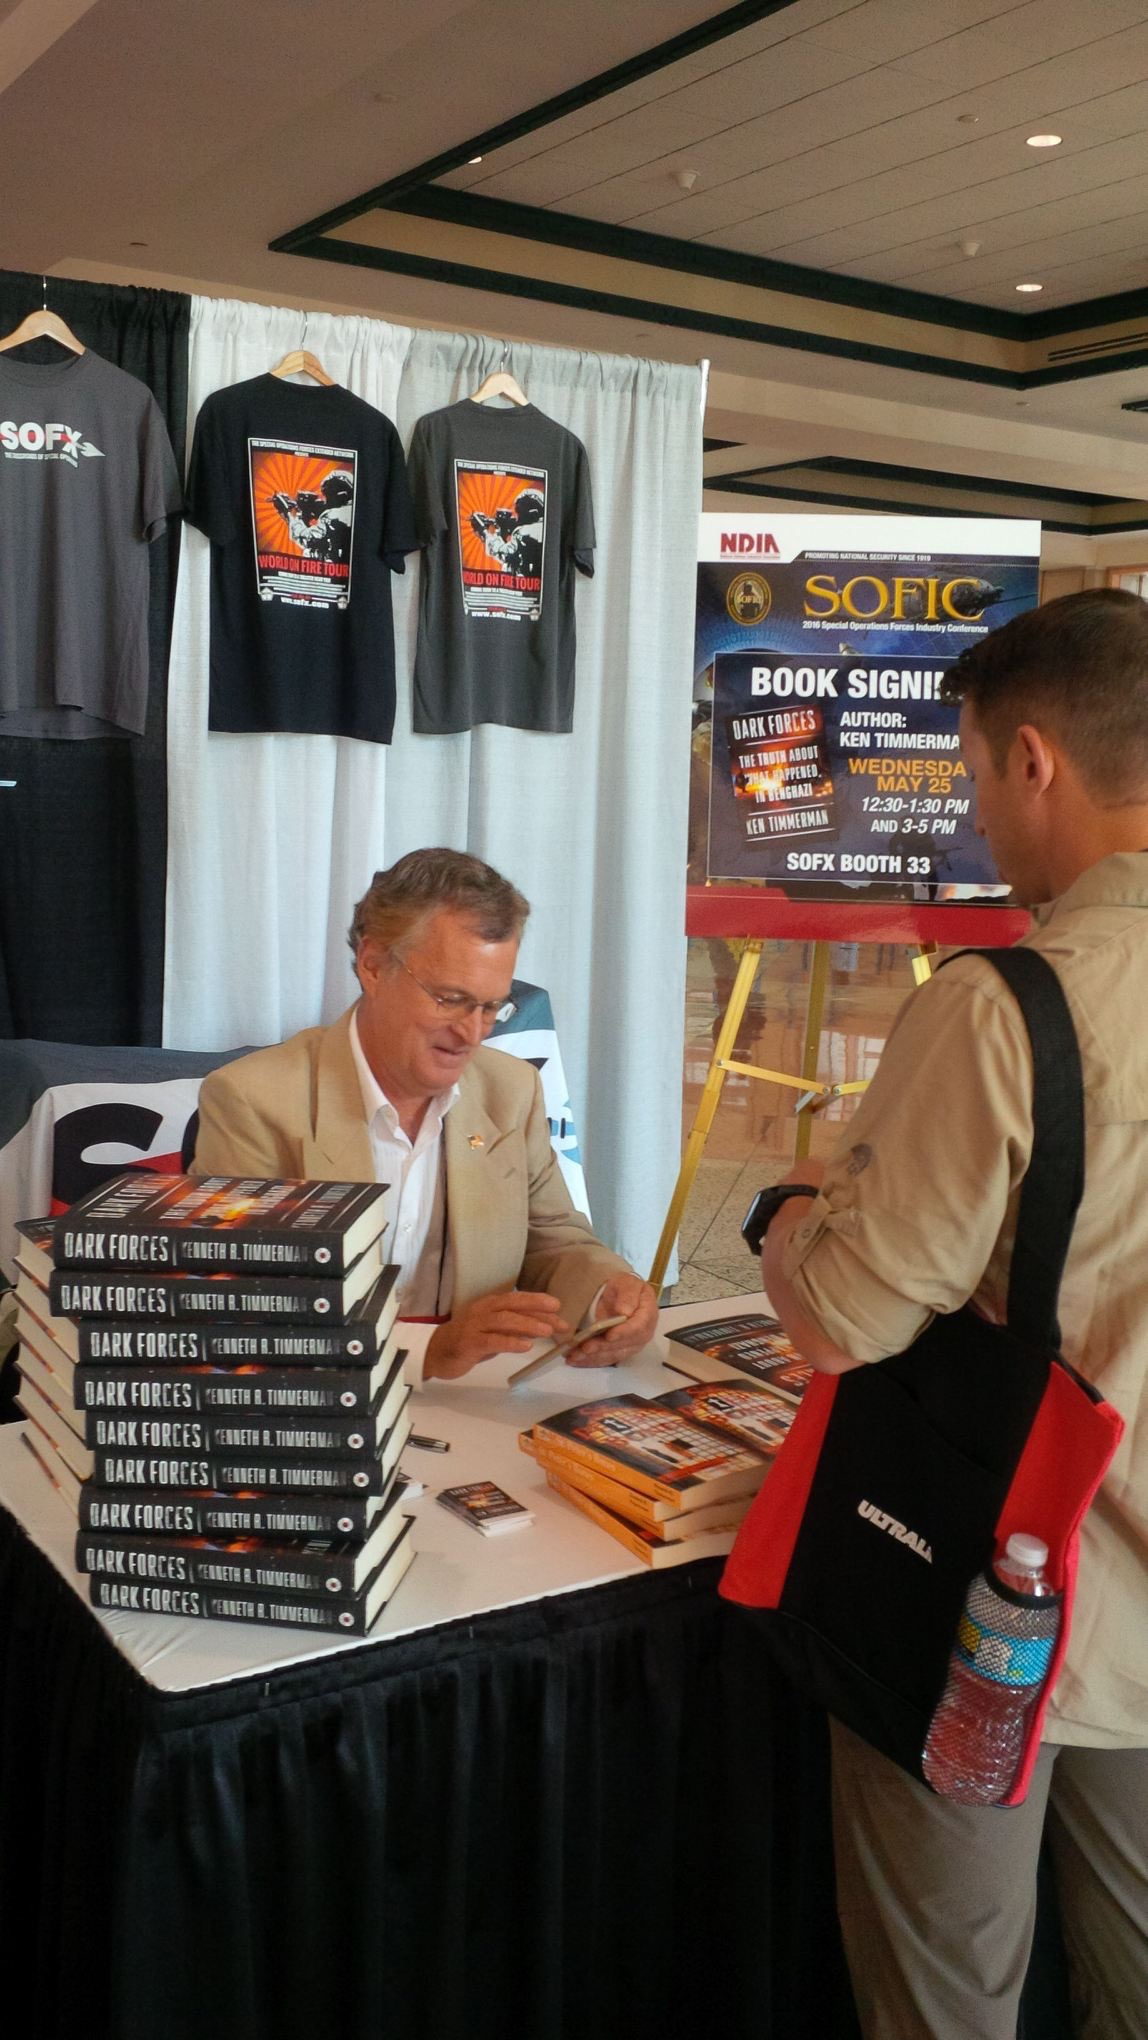 SOFIC